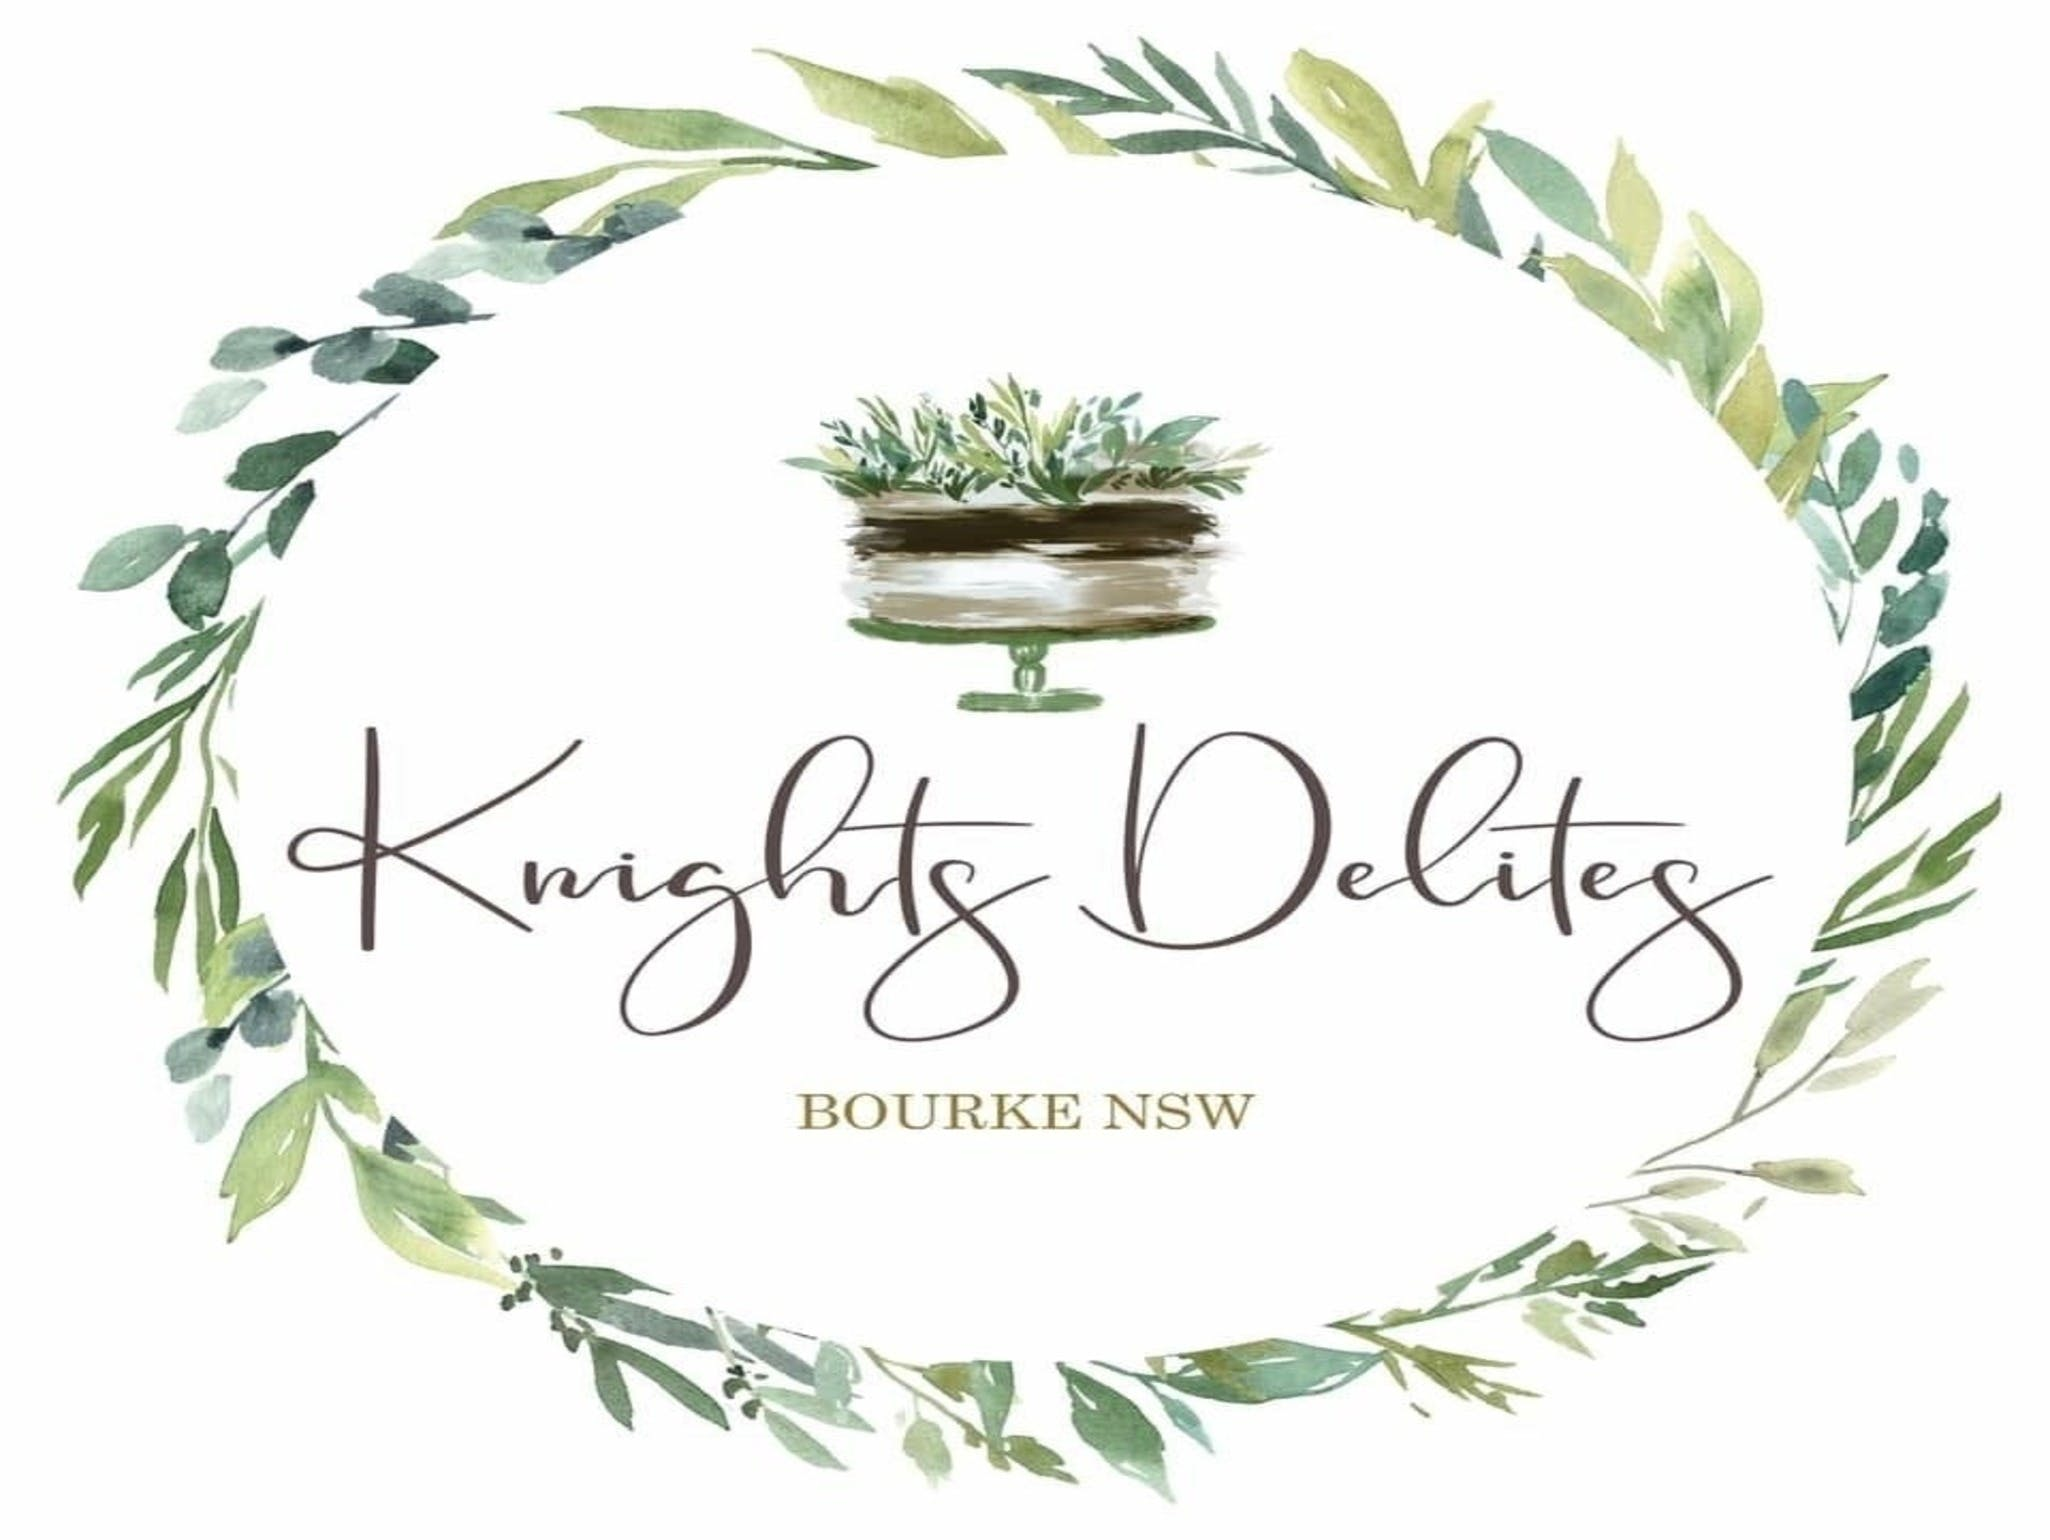 Knights Delites - Restaurants Sydney